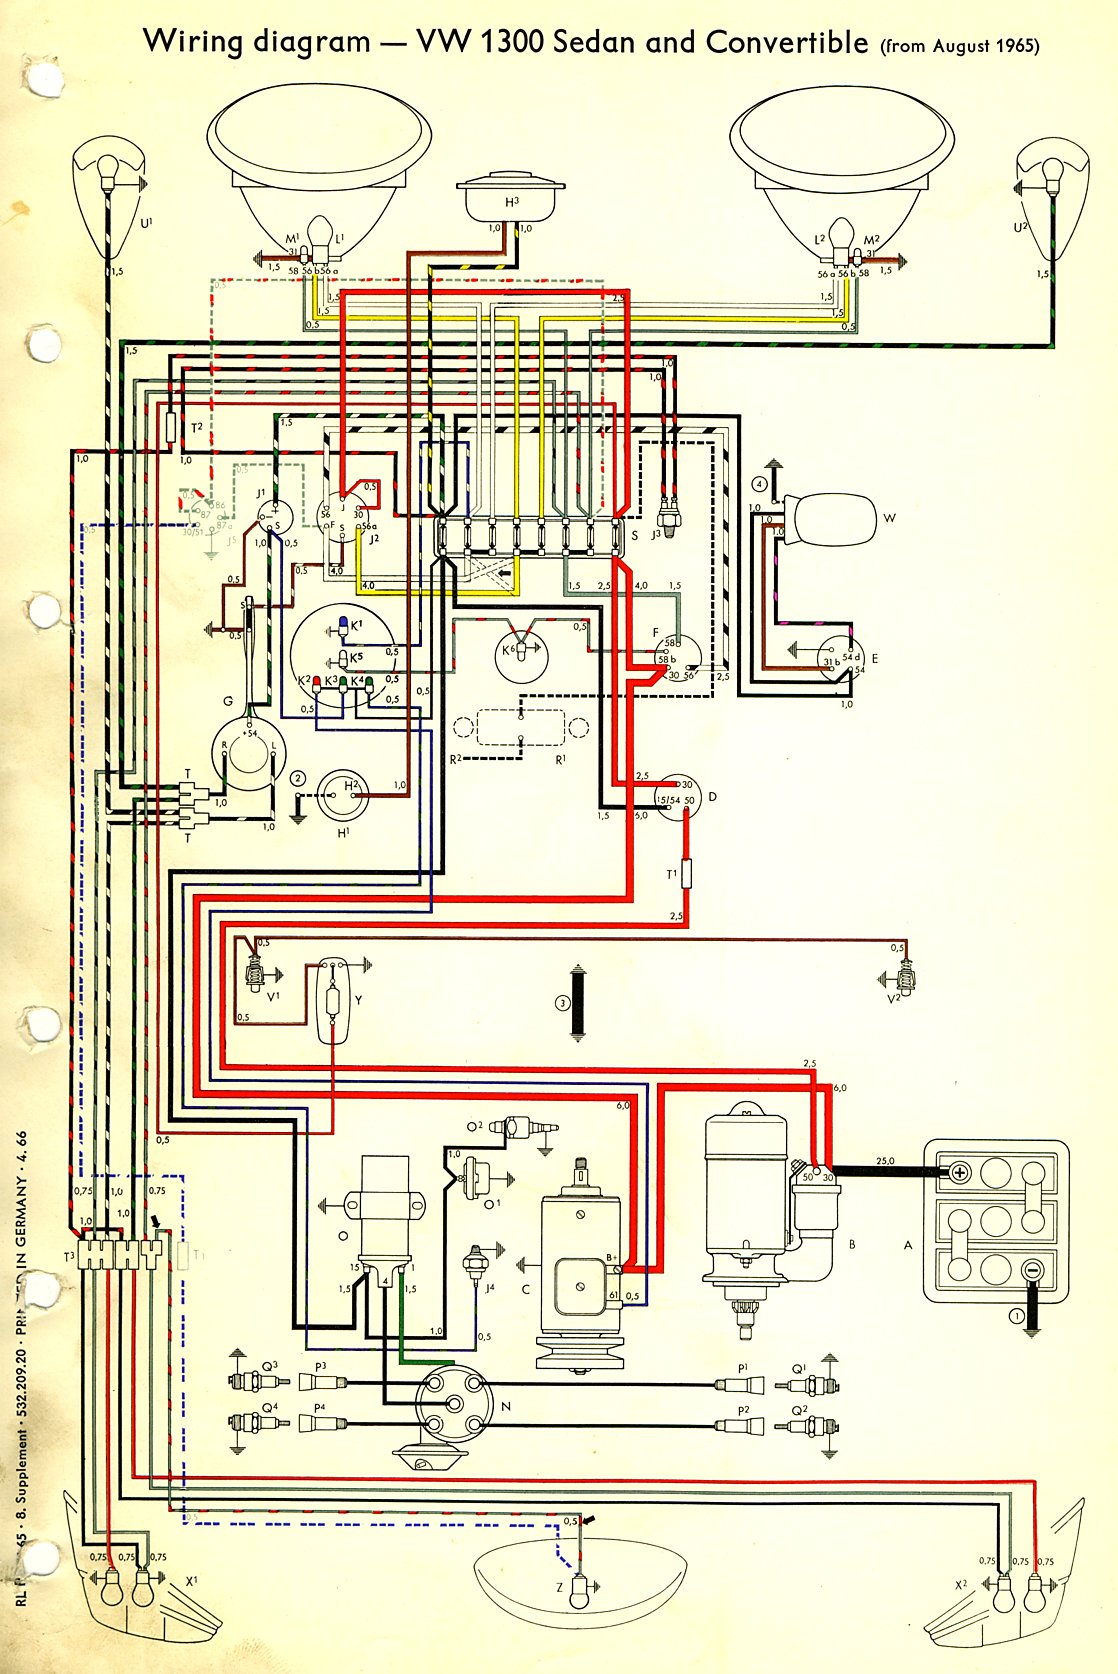 Vw bug wiring diagram get free image about